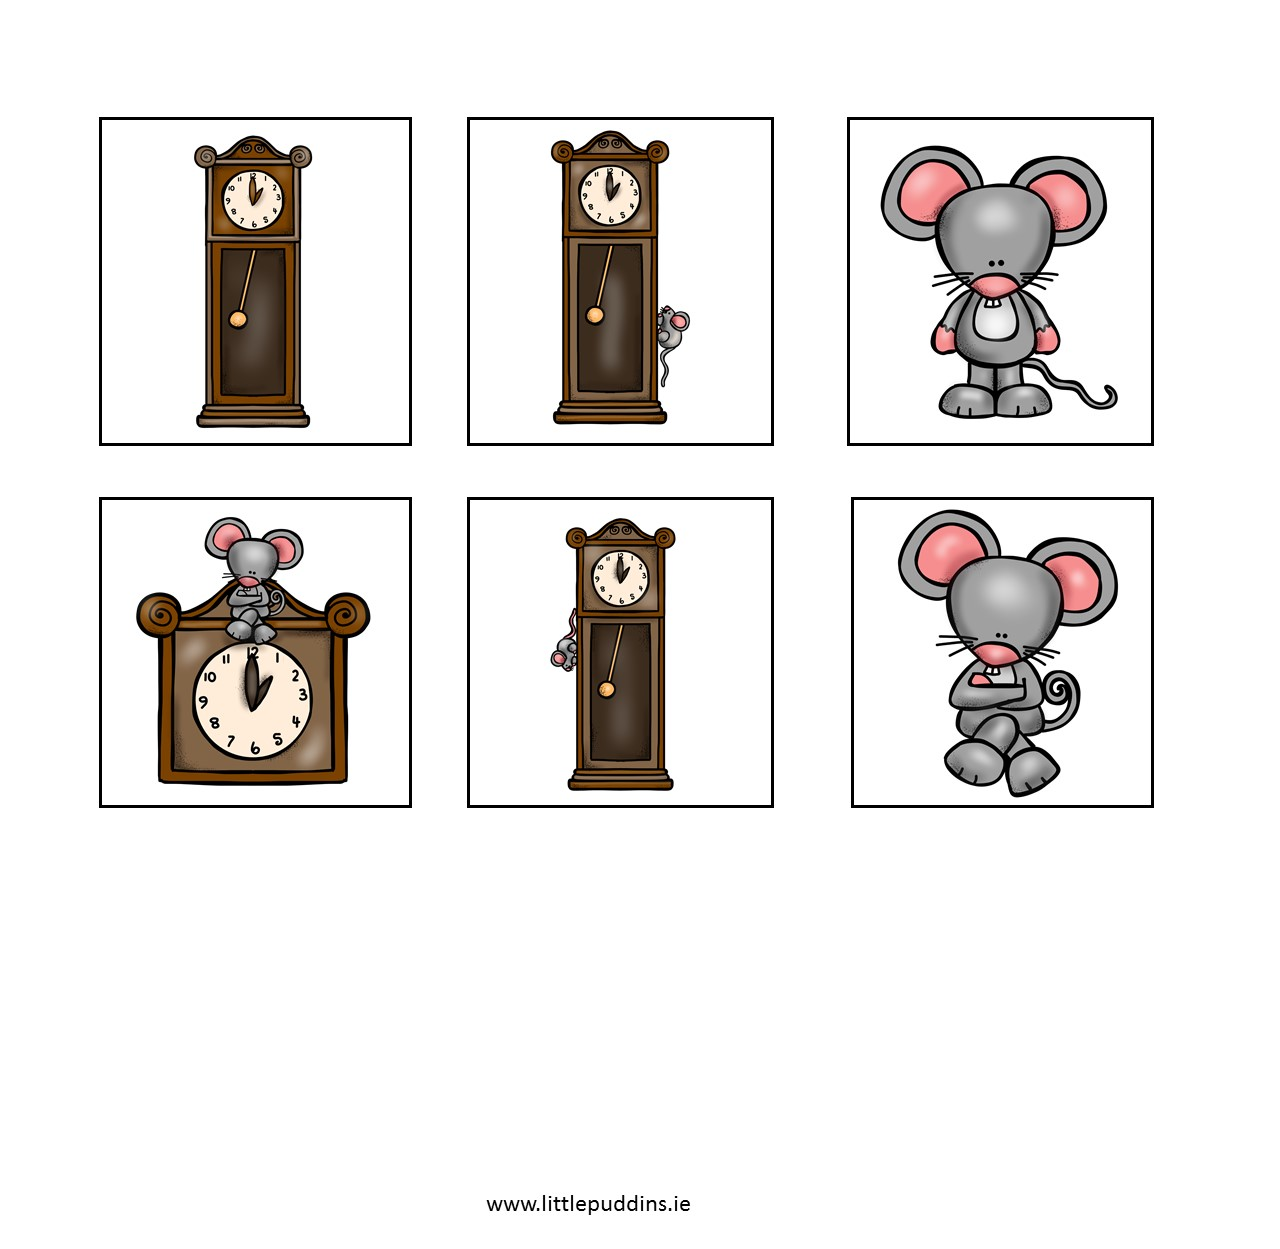 Hickory Dickory Dock Printable – The Little Puddins Blog.